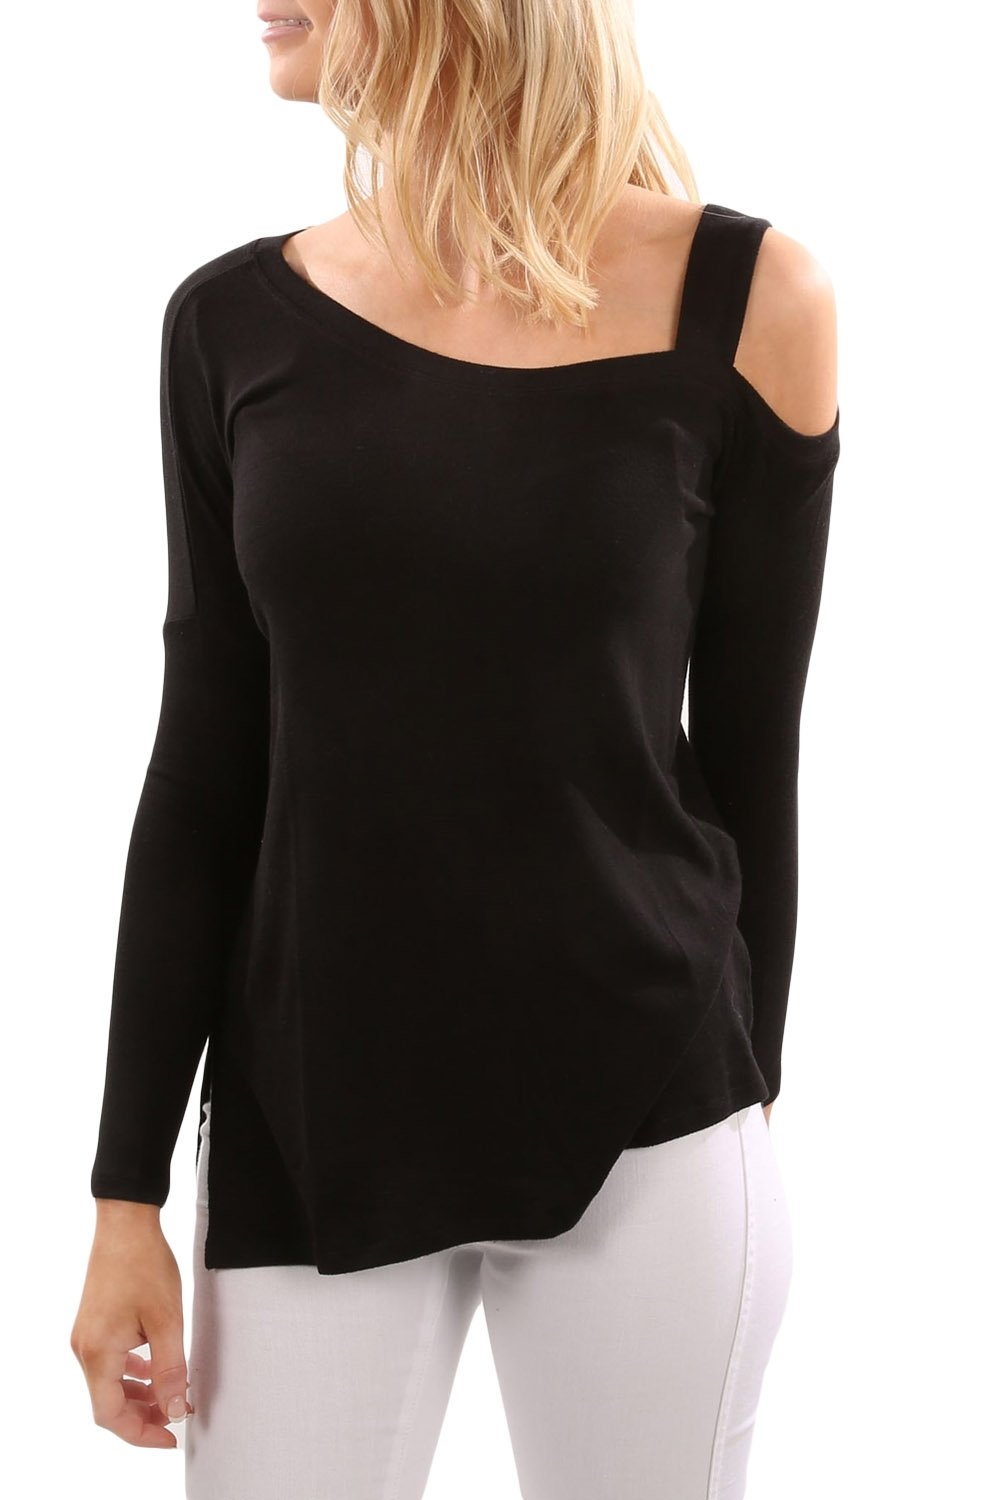 Black One Shoulder Long Sleeve Top with Slit